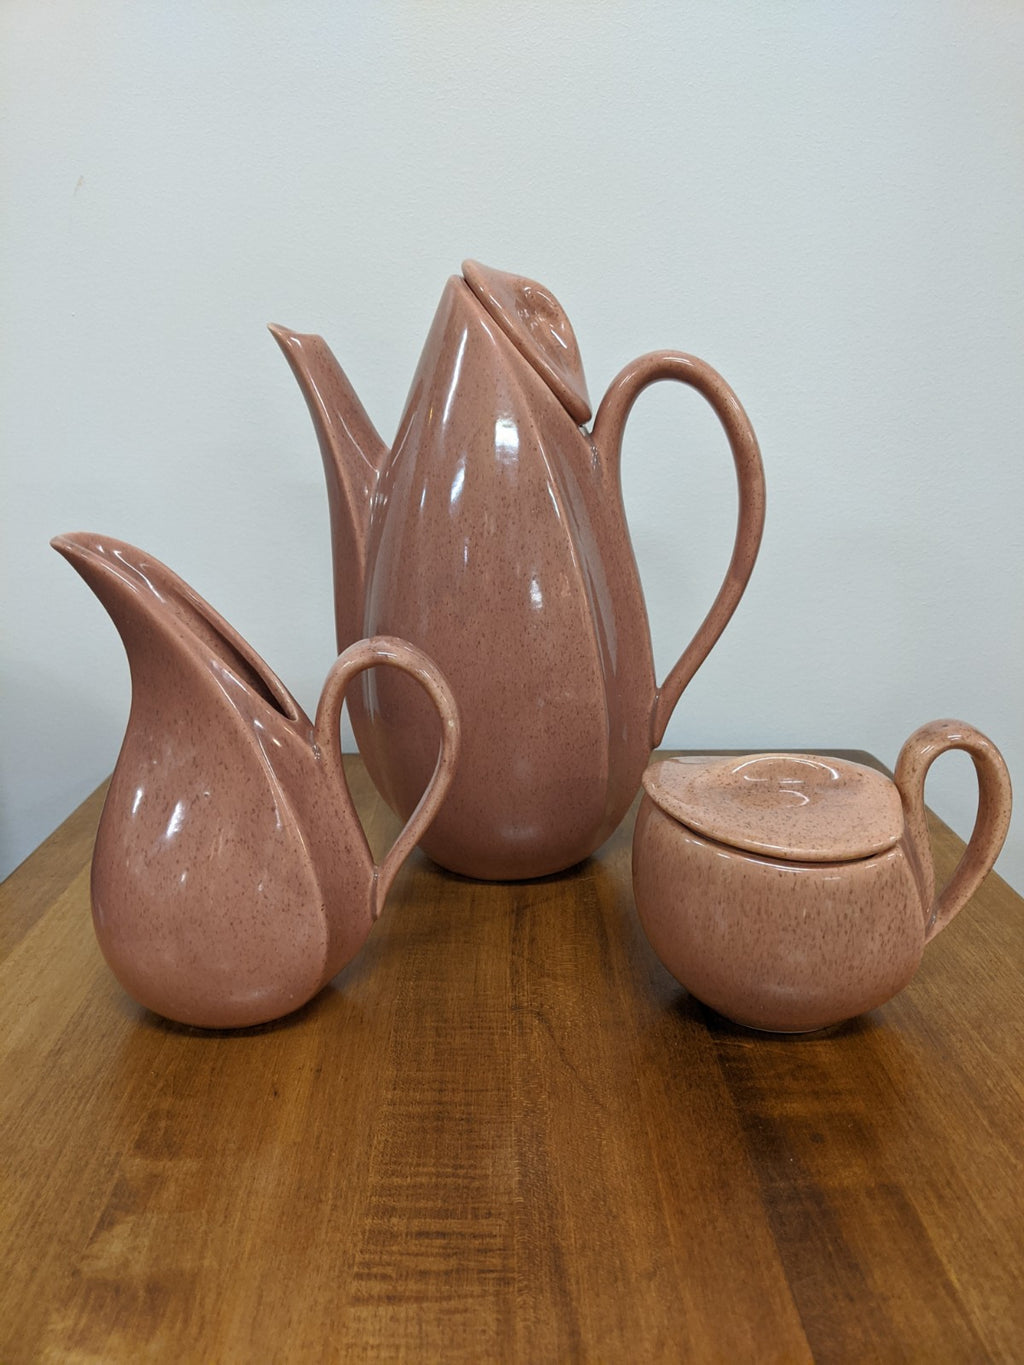 Vintage Chocolate Glaze Tea/Coffee set, cir 1940